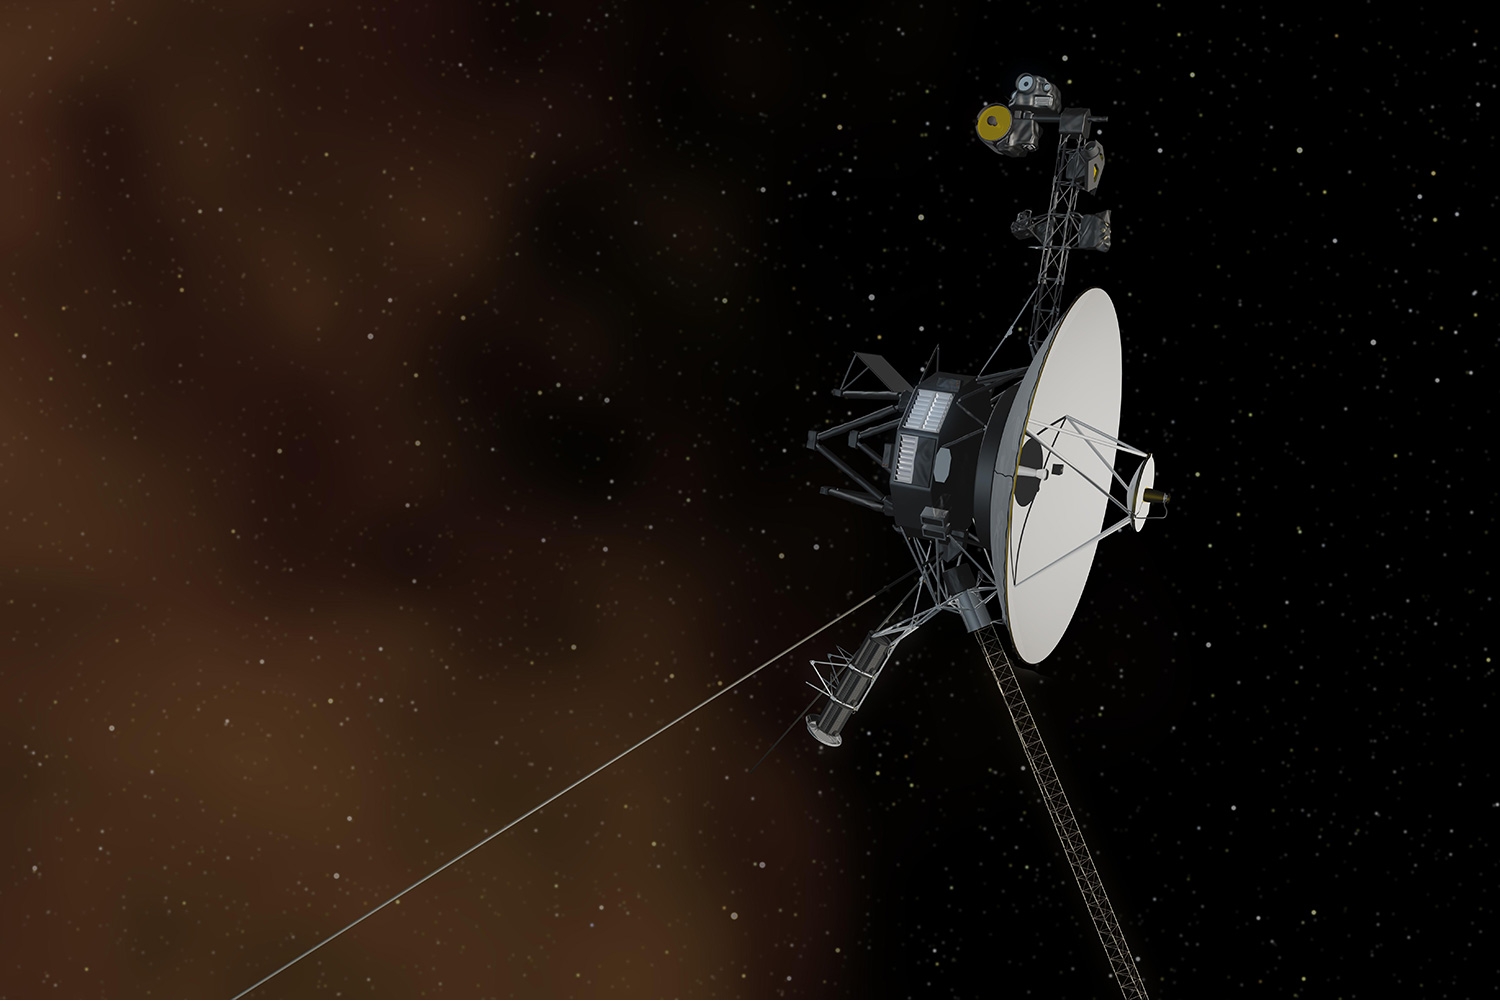 NASA fires Voyager 1 thrusters after decades-long sleep